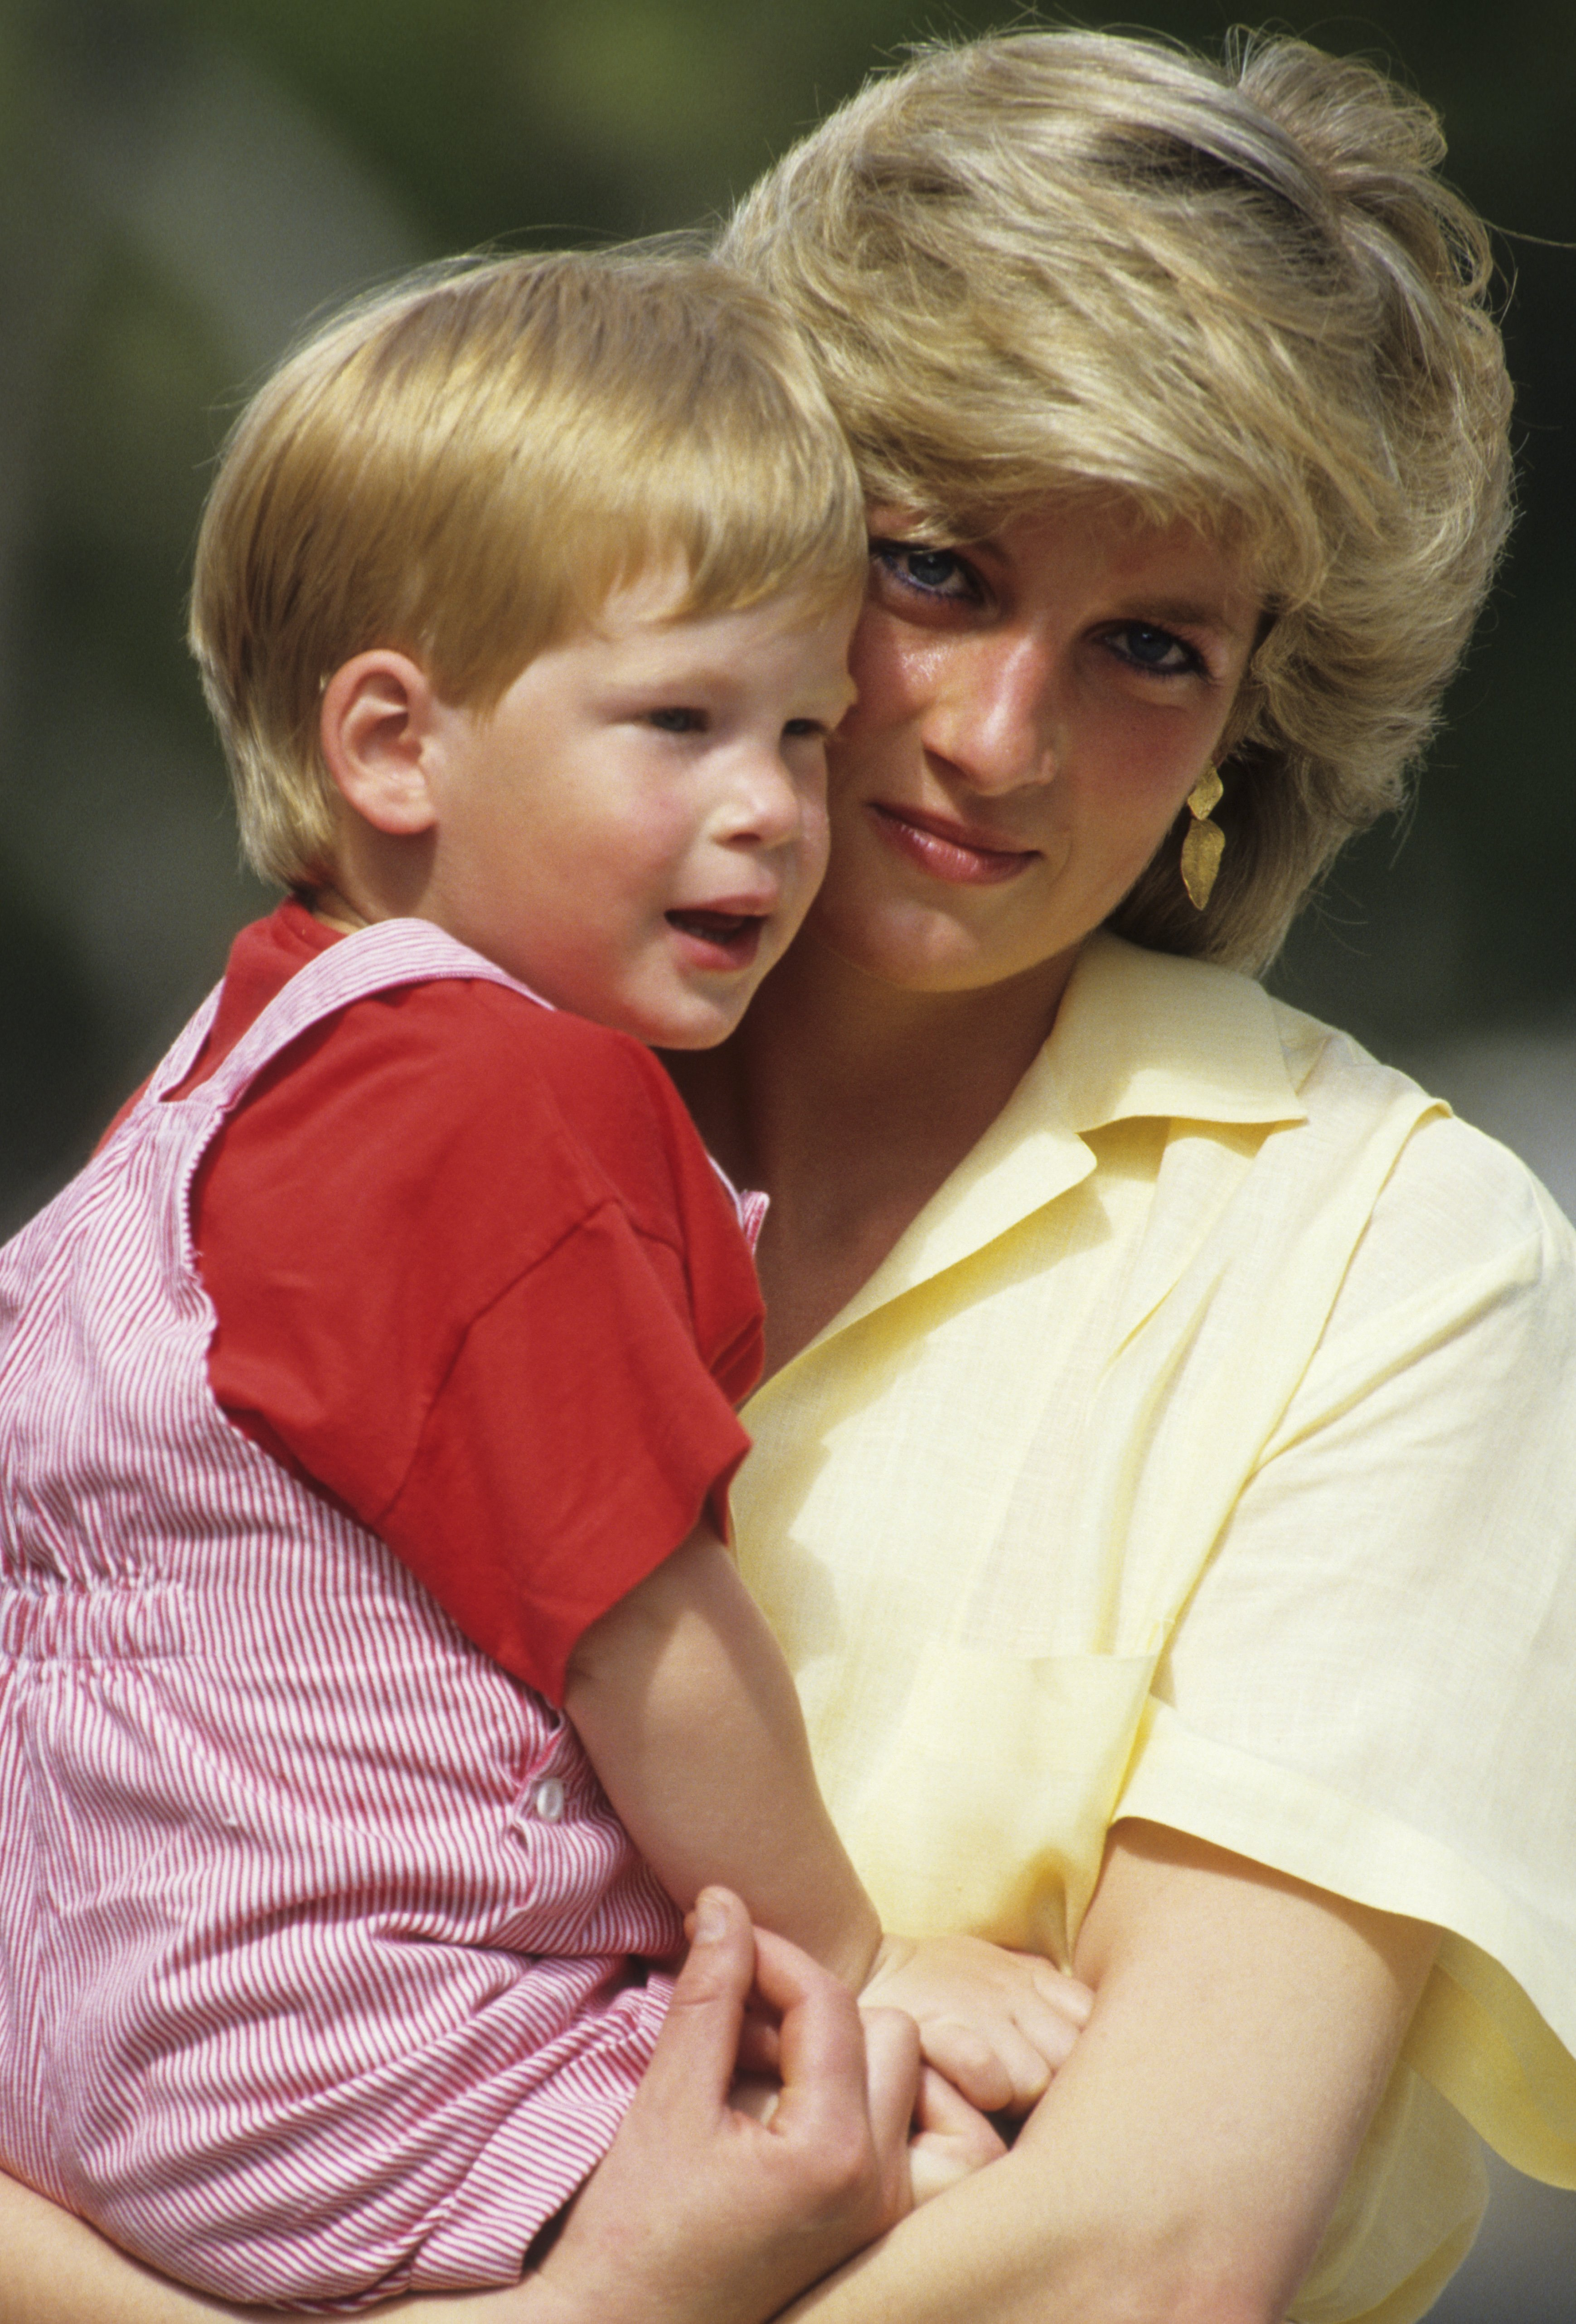 Image Credits: Getty Images / Georges De Keerle   Diana, Princess of Wales with Prince Harry on holiday in Mallorca, Spain on August 10, 1987.